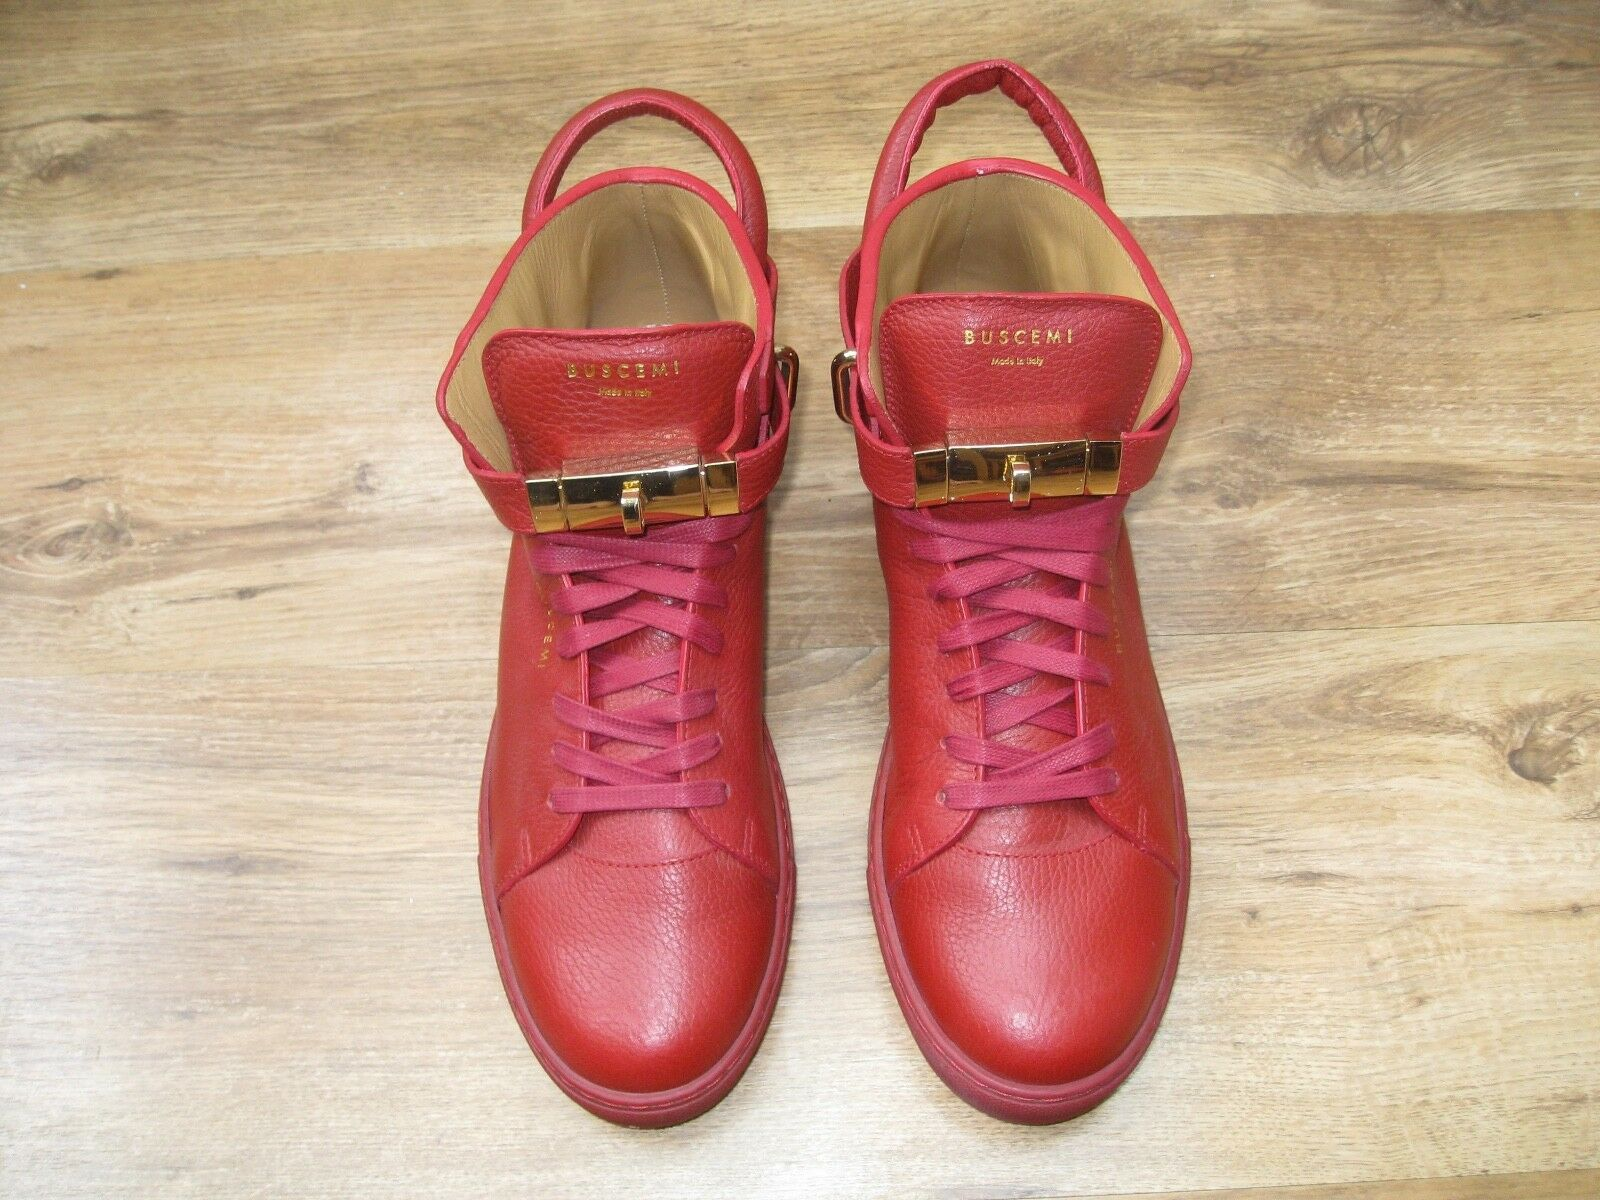 Authentic Buscemi 100mm Red Trainers Sneakers shoes Size US 11